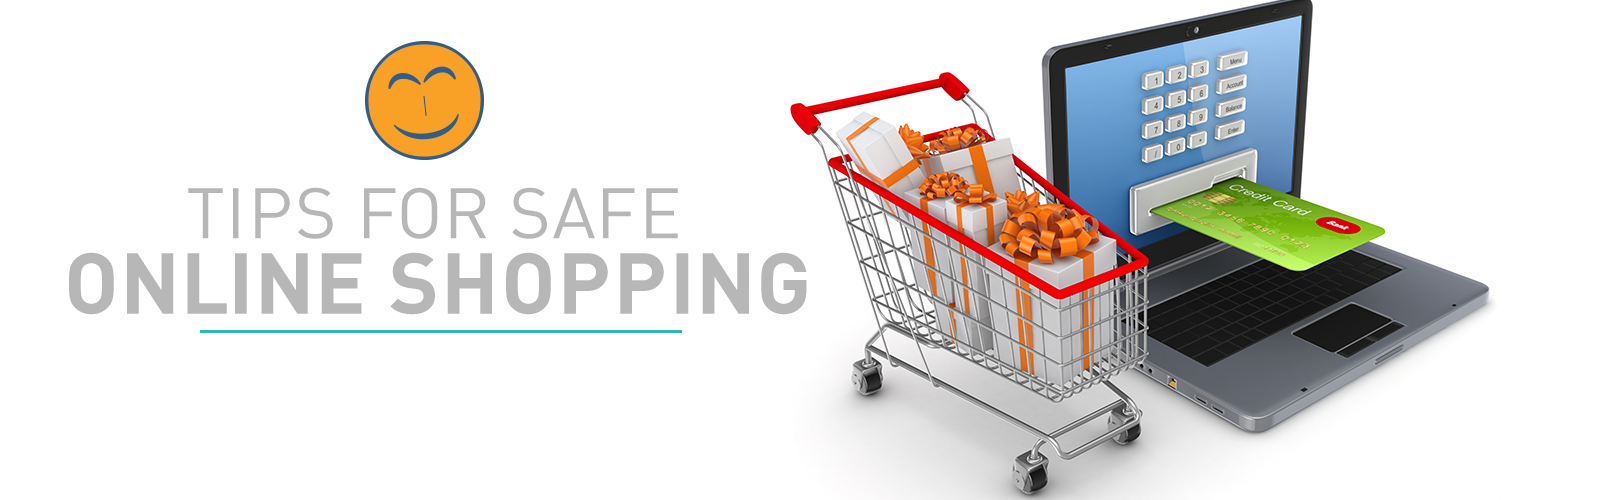 Tips for safe online shopping by konga com